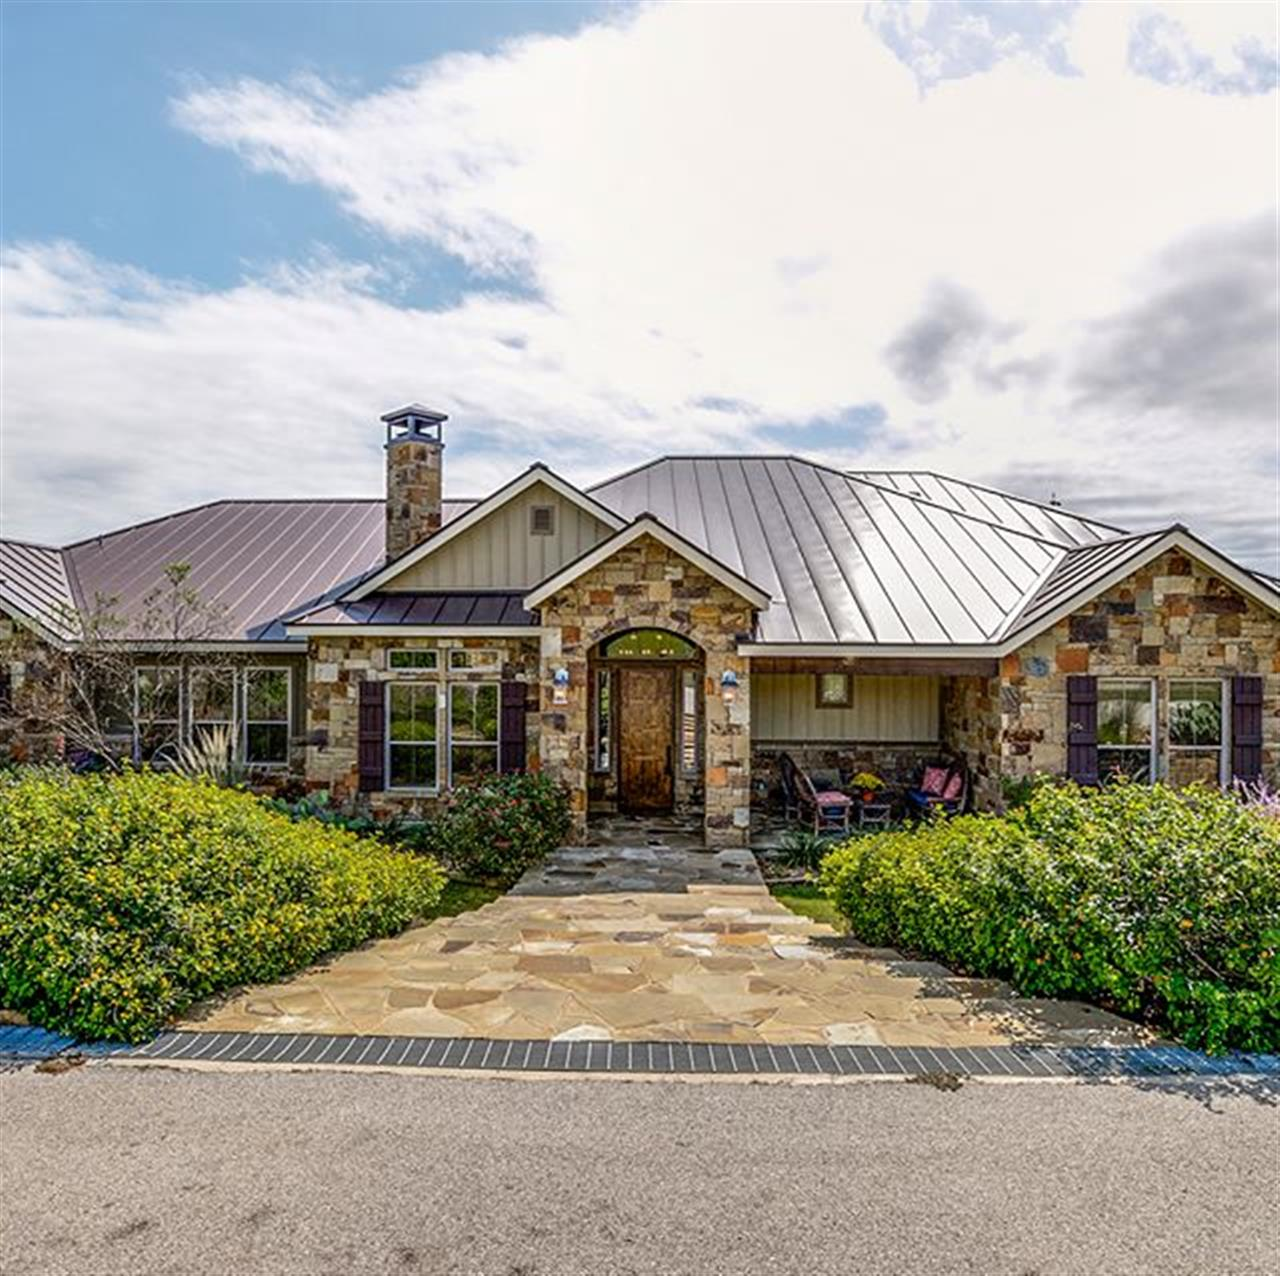 #milliondollarmonday: 1881 Upper Balcones Rd. in #Boerne. Situated on 28+ acres, this marvelous estate combines dramatic architecture, gorgeous grounds and outstanding horse facilities in the most skillful manner.